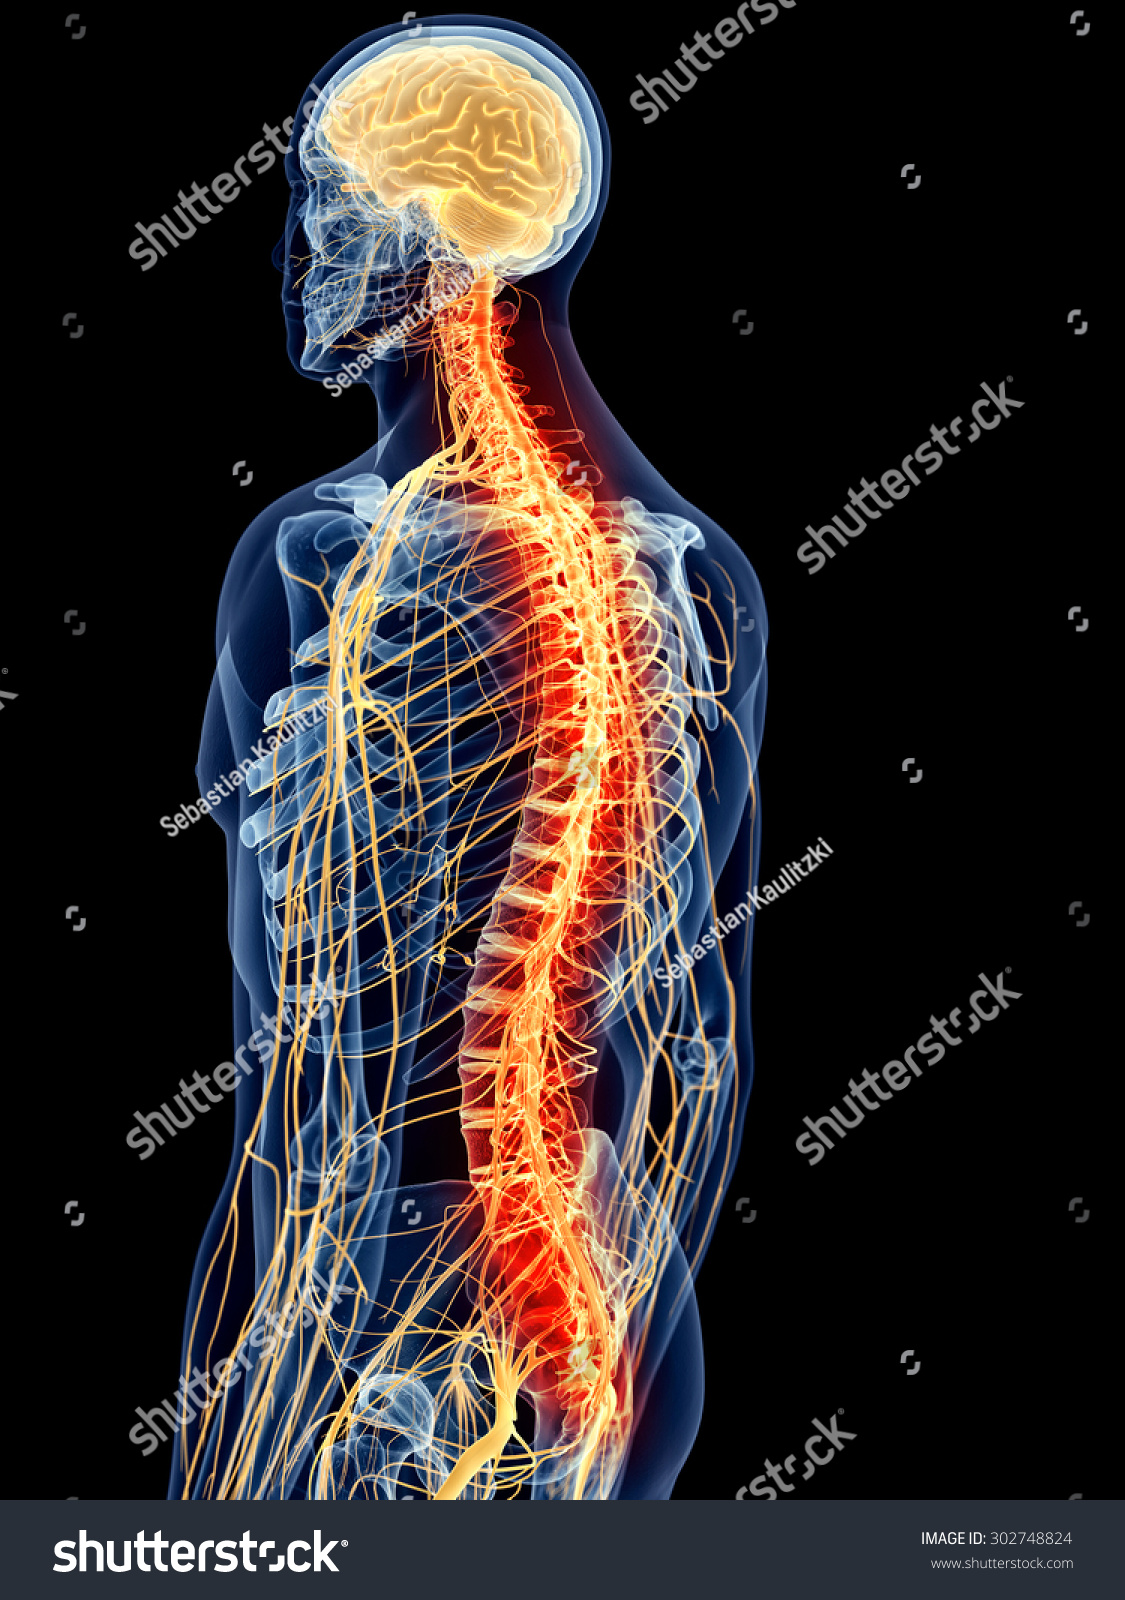 Medically Accurate Illustration Painful Spine Stockillustration